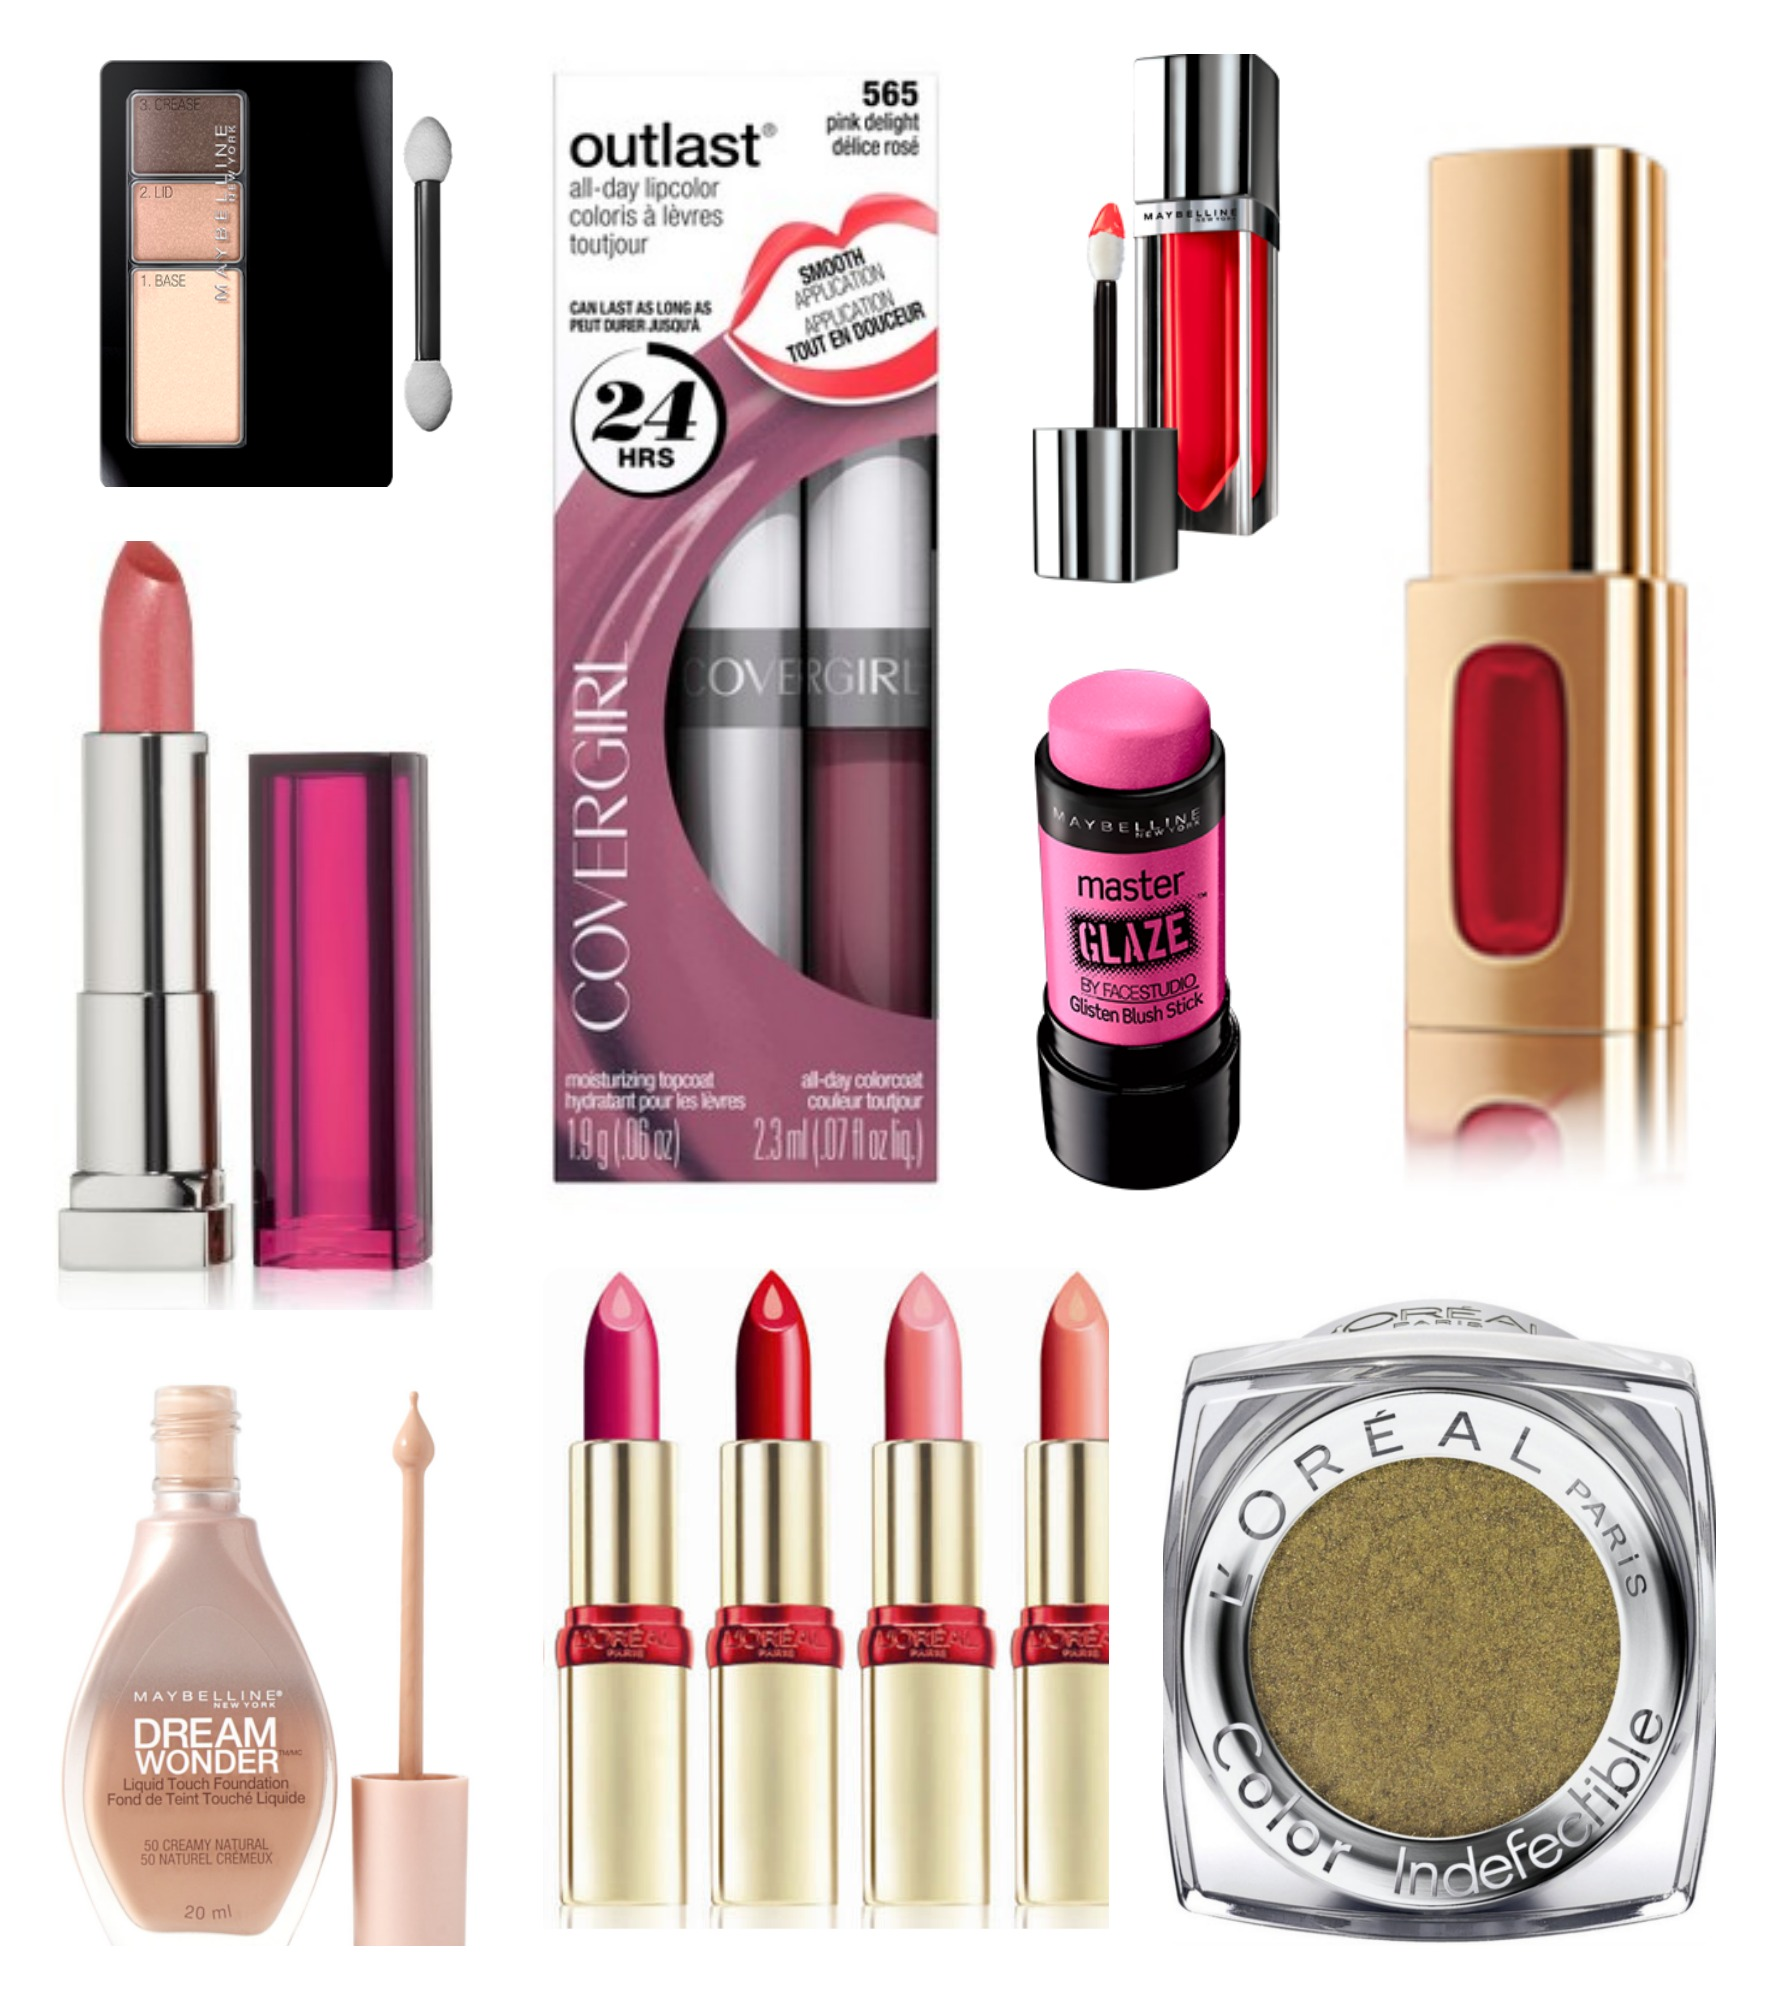 disc. drugstore products collage